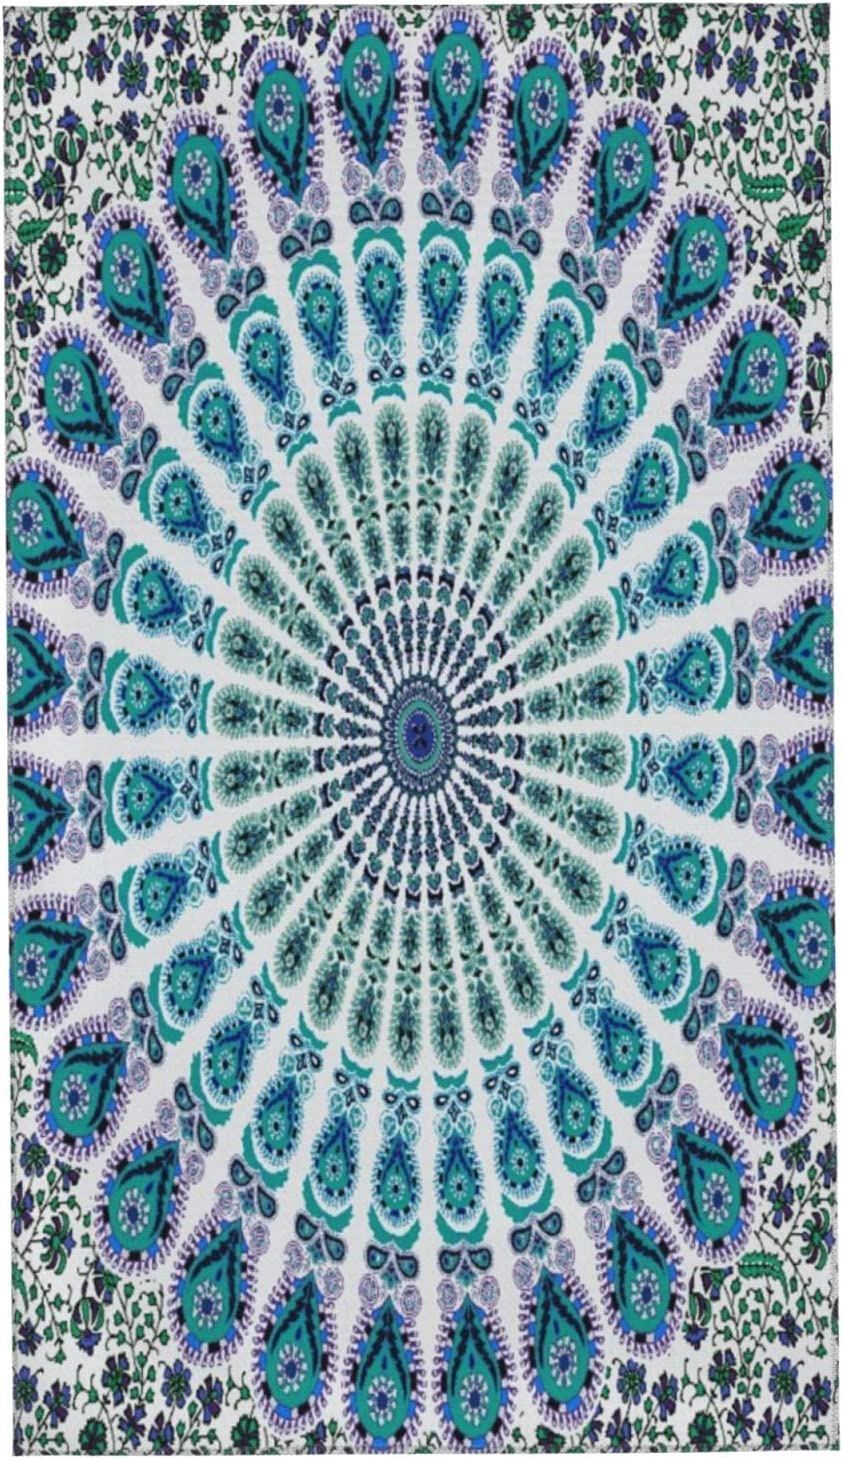 LAKUERVI Max 41% OFF Microfiber Hand Towel for Mandala Blue Ranking integrated 1st place Bathroom Indian